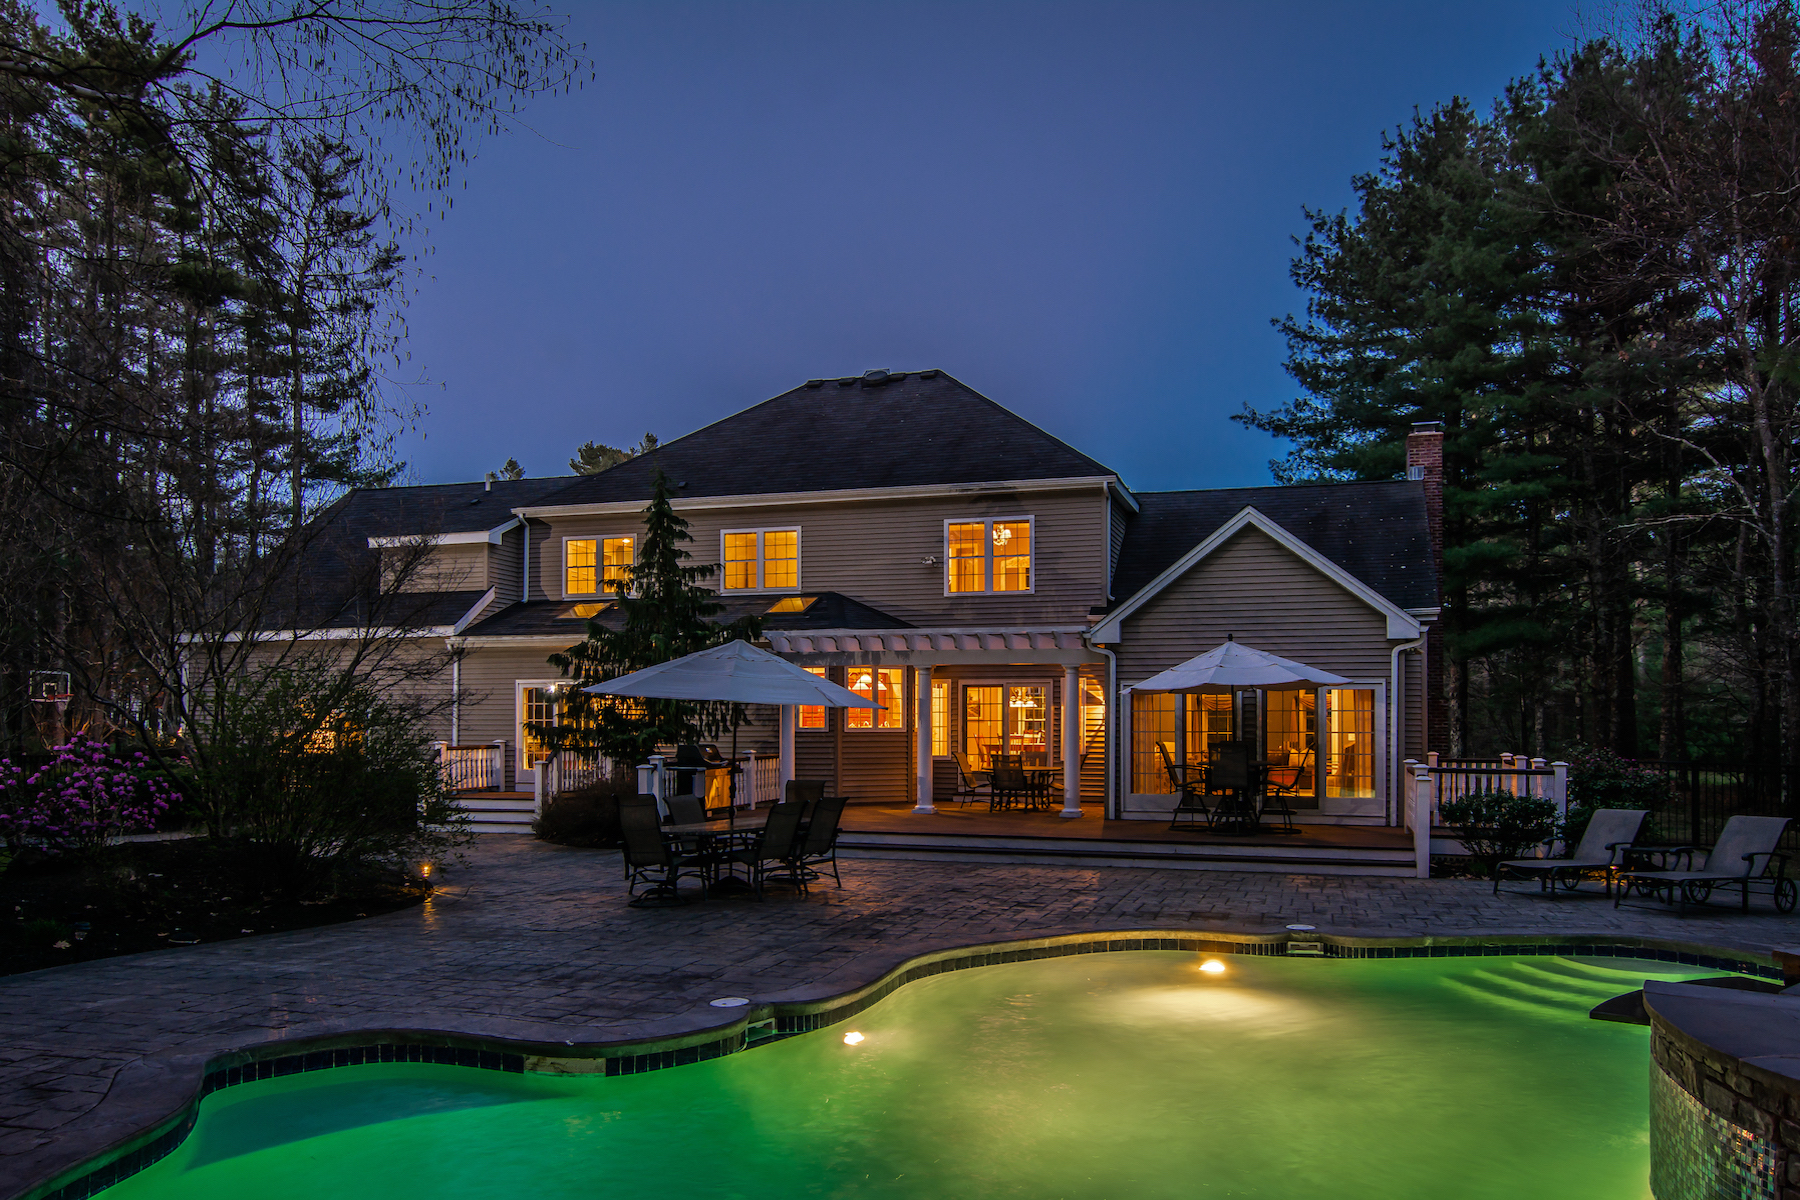 Single Family Home for Active at Meticulously Maintained Colonial 7 River Bend Road Upton, Massachusetts 01568 United States